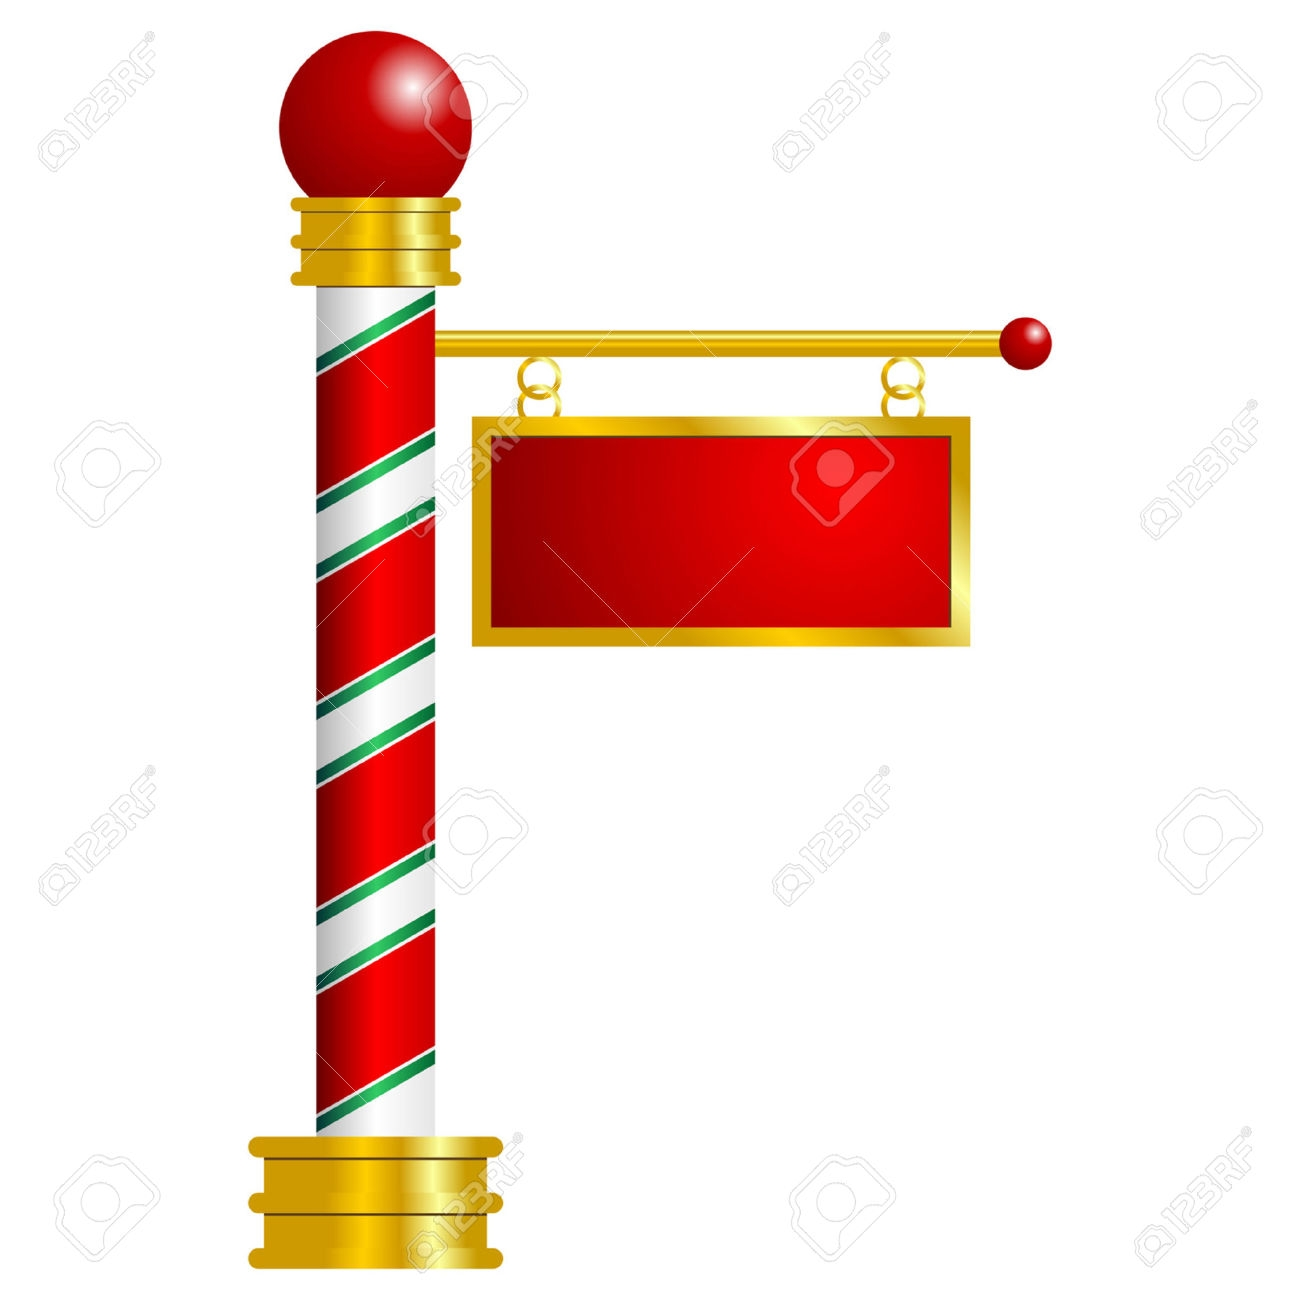 North pole clipart 9 » Clipart Station.